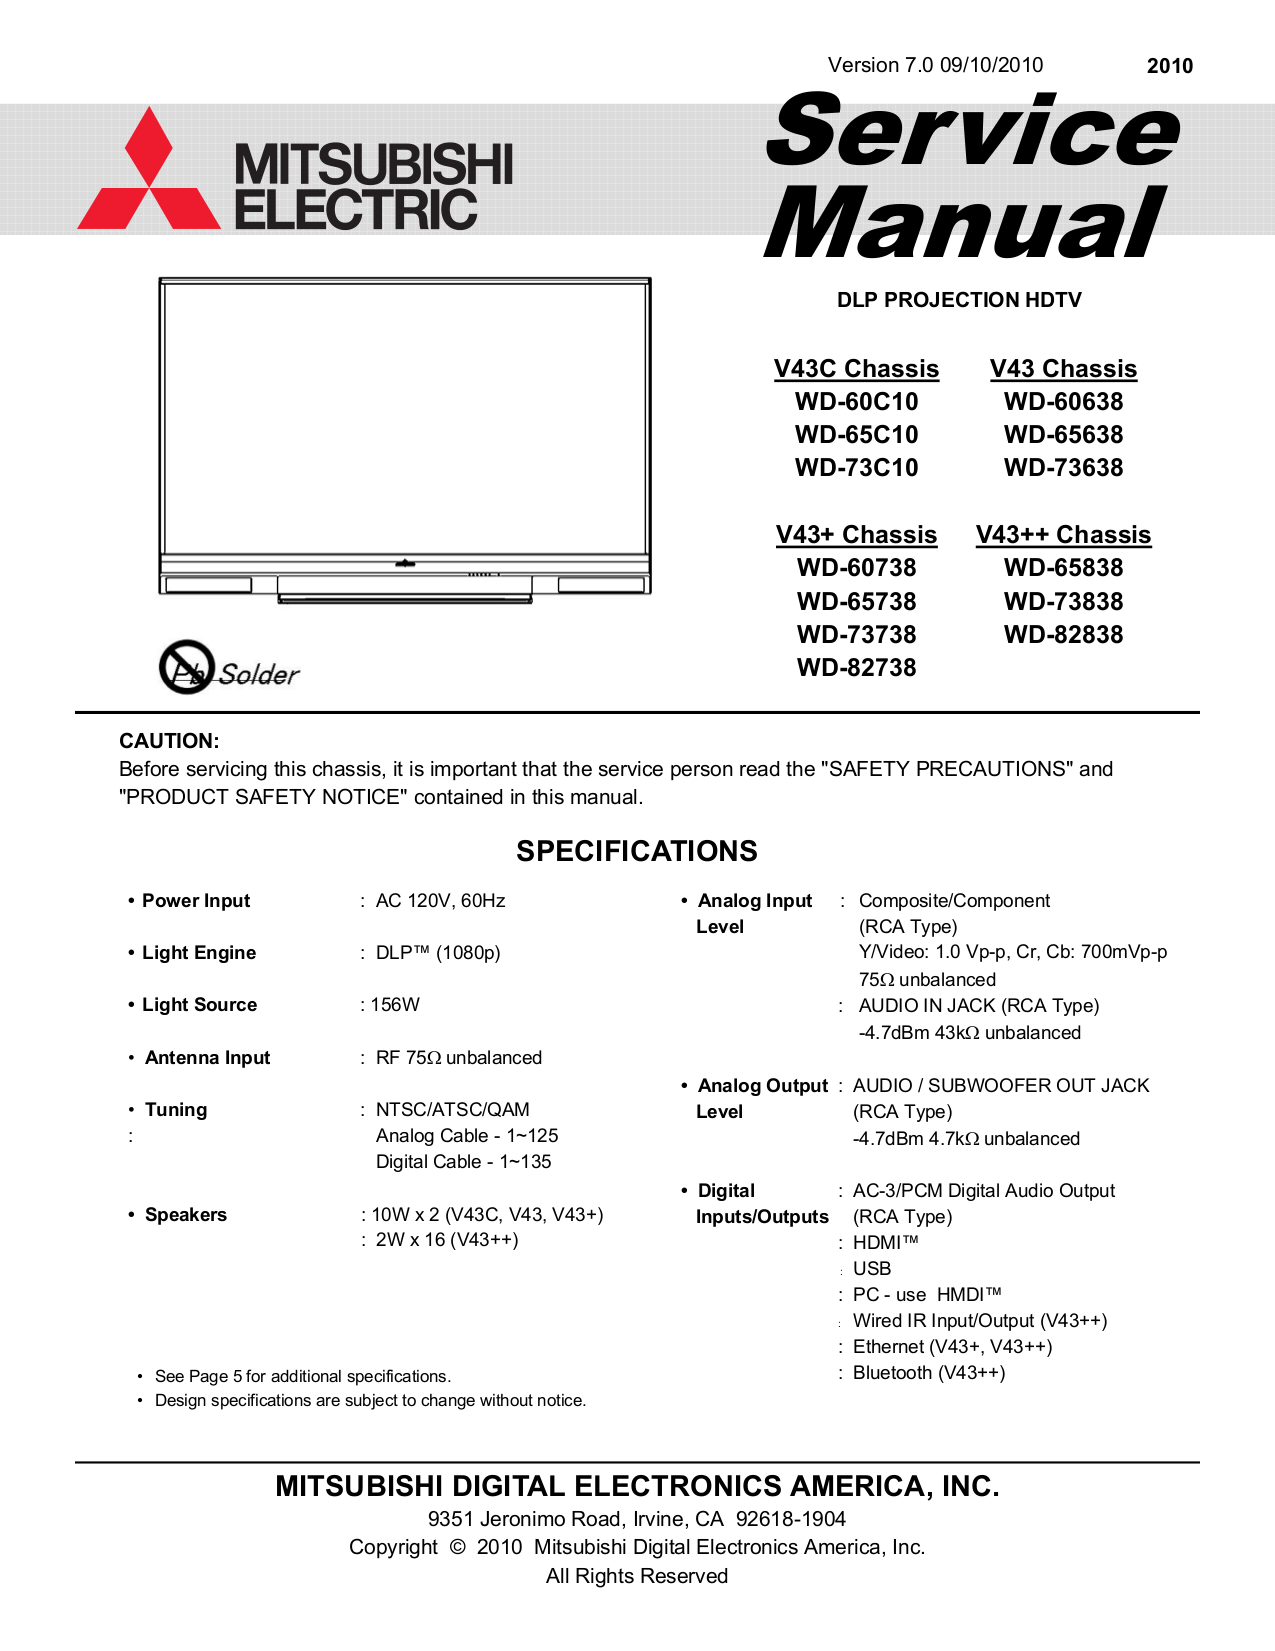 document service model preview customer wd brand pdf for tv page category manual mitsubishi